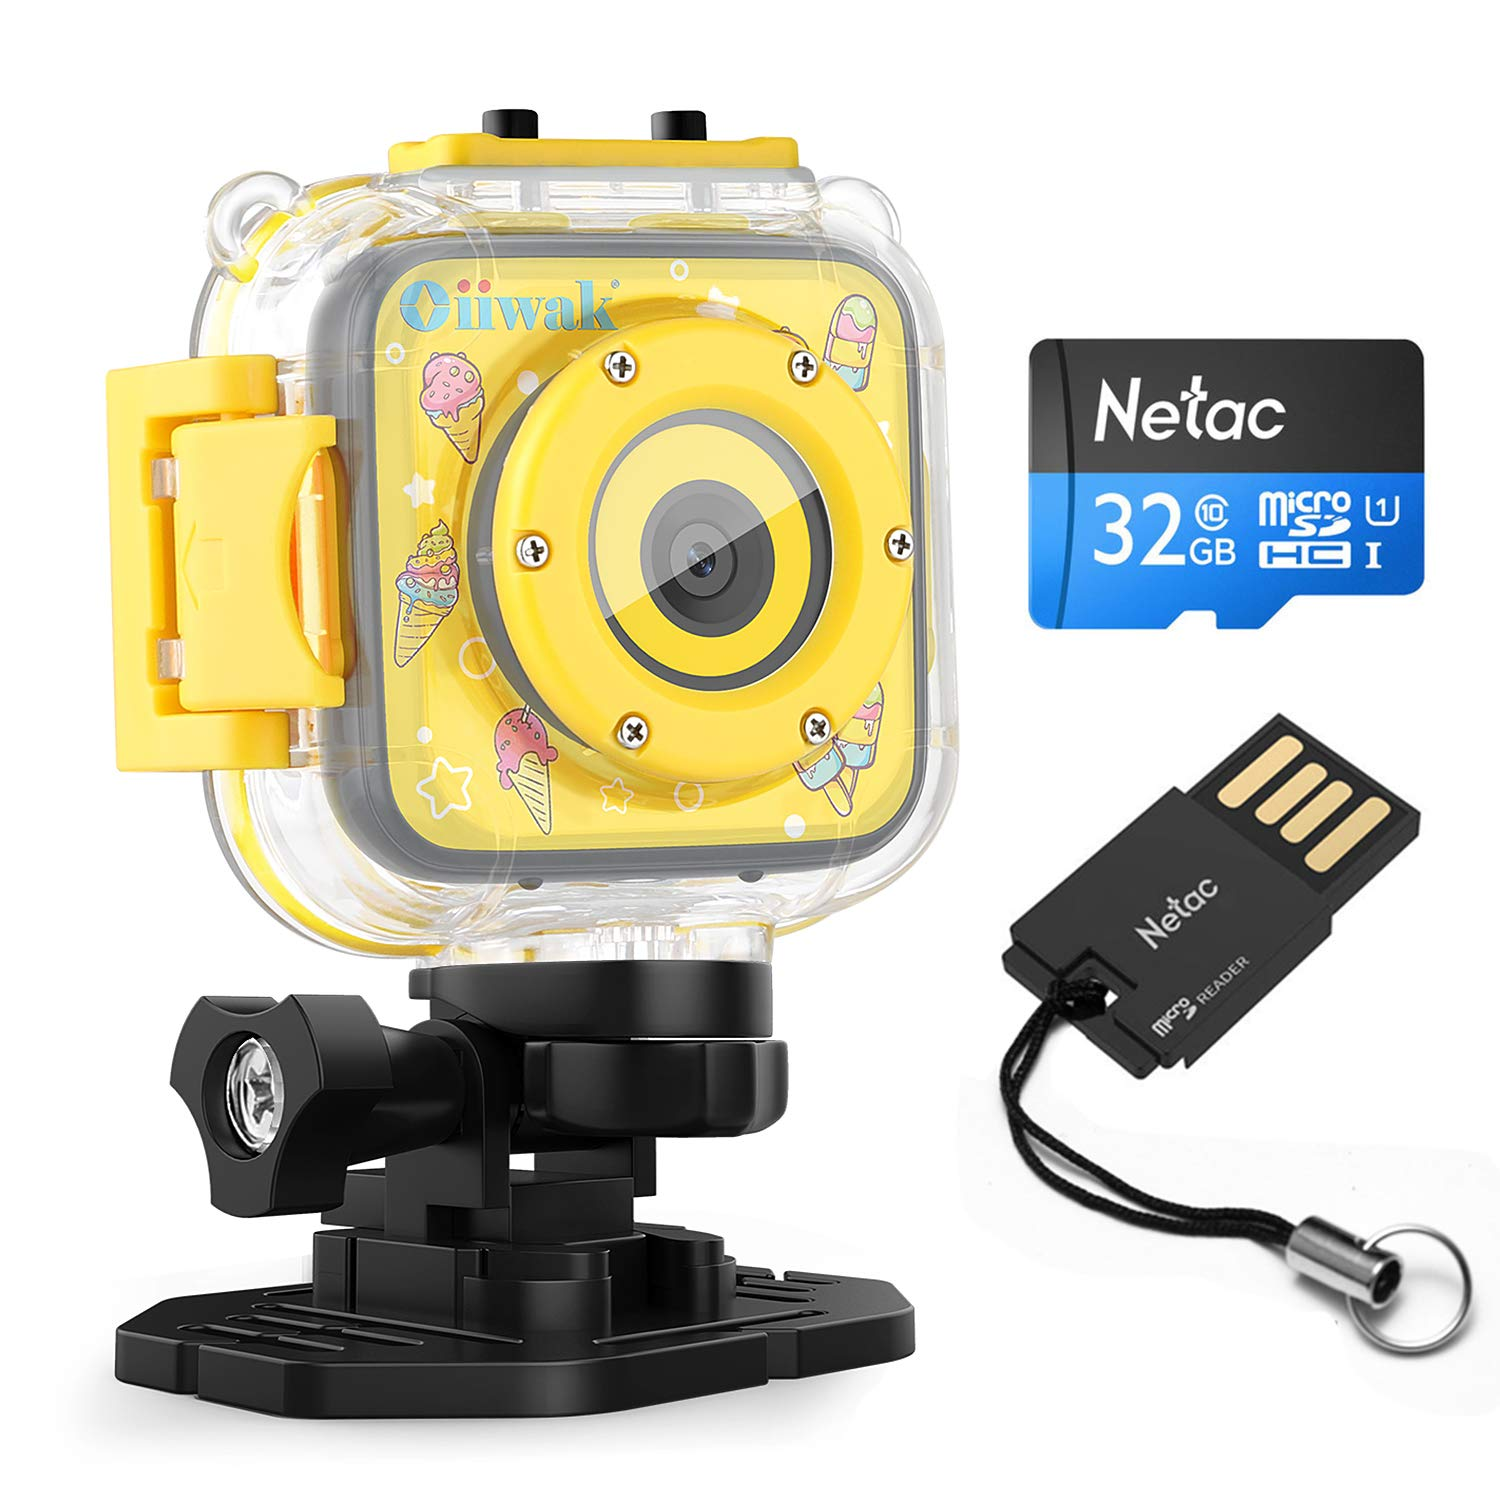 Oiiwak Children Kids Camera 5.0 MP Digital Waterproof Camera with Video Recorder for Girls Birthday Gift Learn Camera Includes 32GB Memory Card (Yellow)